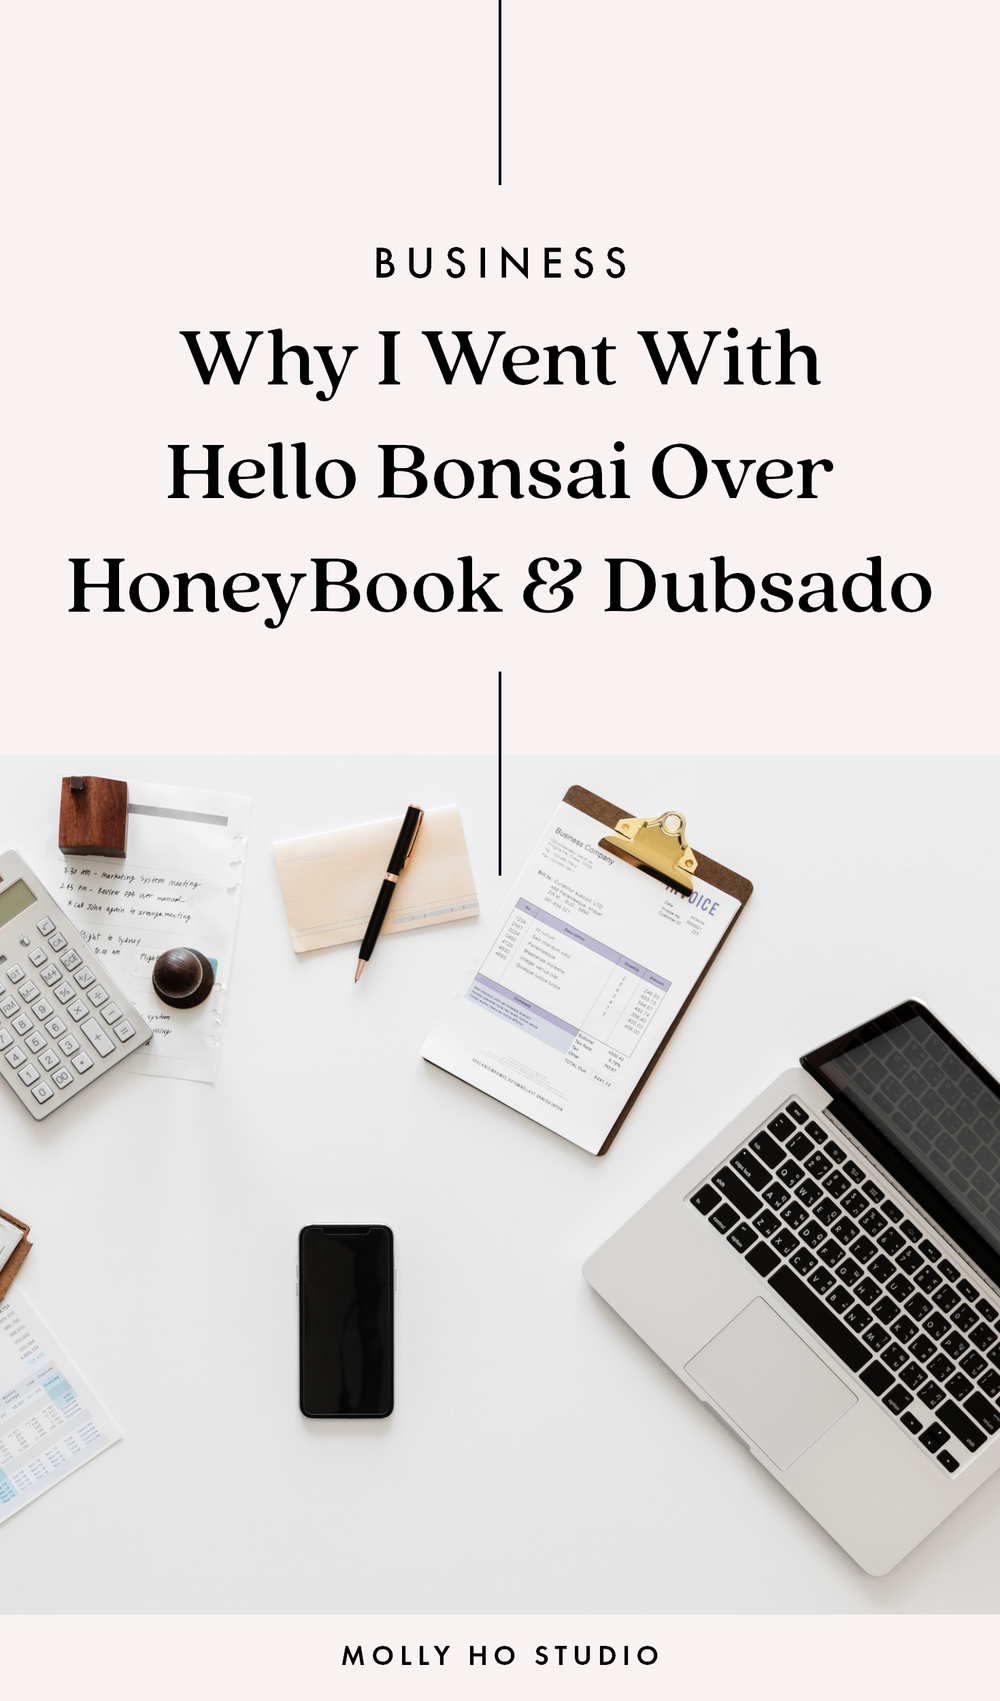 Why I Went With Hello Bonsai Over HoneyBook & Dubsado | Hello Bonsai Review | Automate Your Client Onboarding Process | Contract And Invoice Templates For Freelancers | How To Streamline Your Creative Business | Business Organization And Workflow | Saving Time In Your Business | Molly Ho Studio